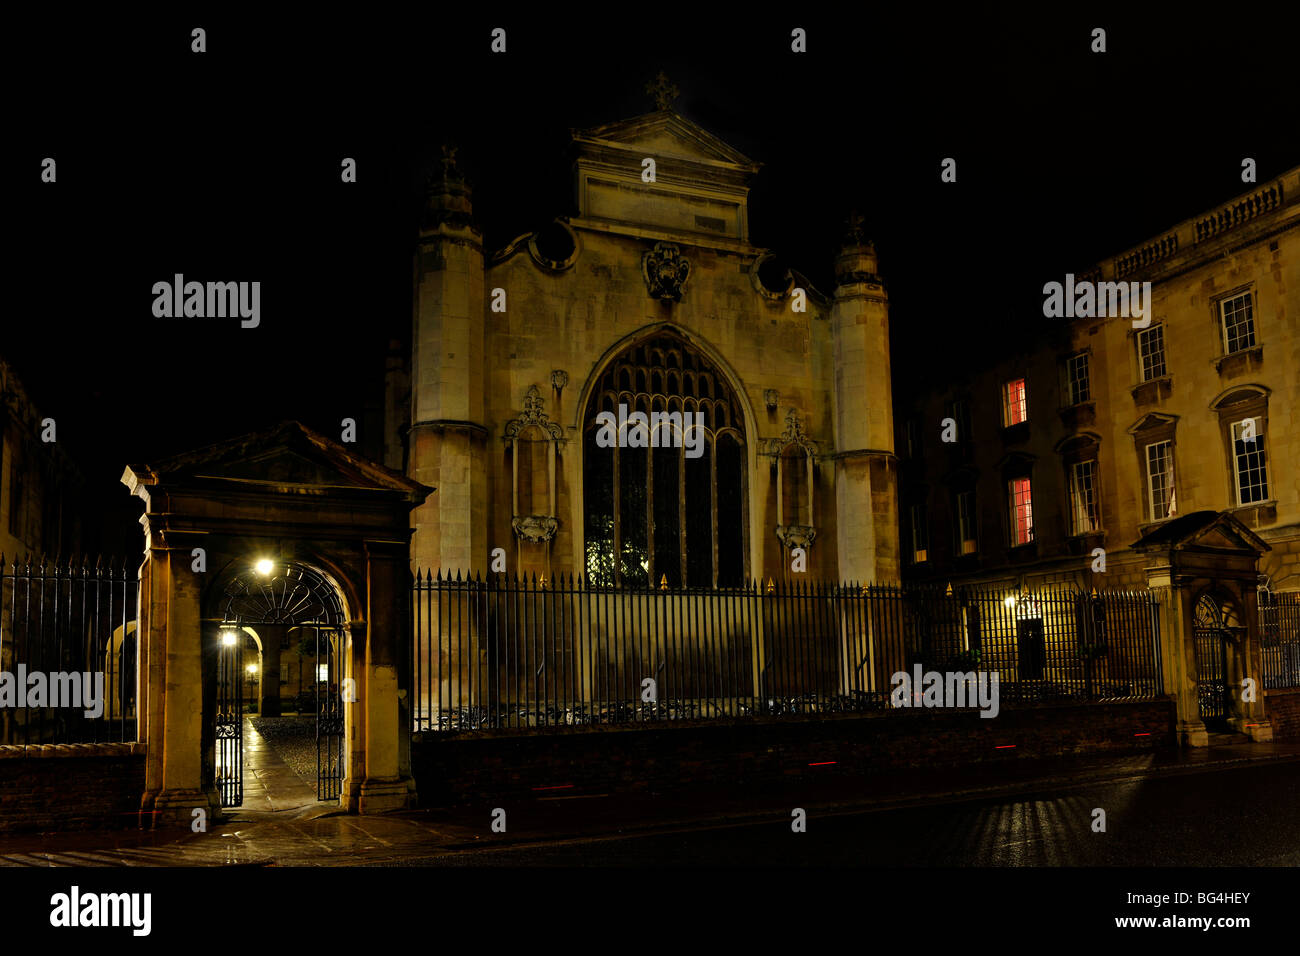 Peterhouse College, Trumpington Street, Cambridge, England, UK. - Stock Image